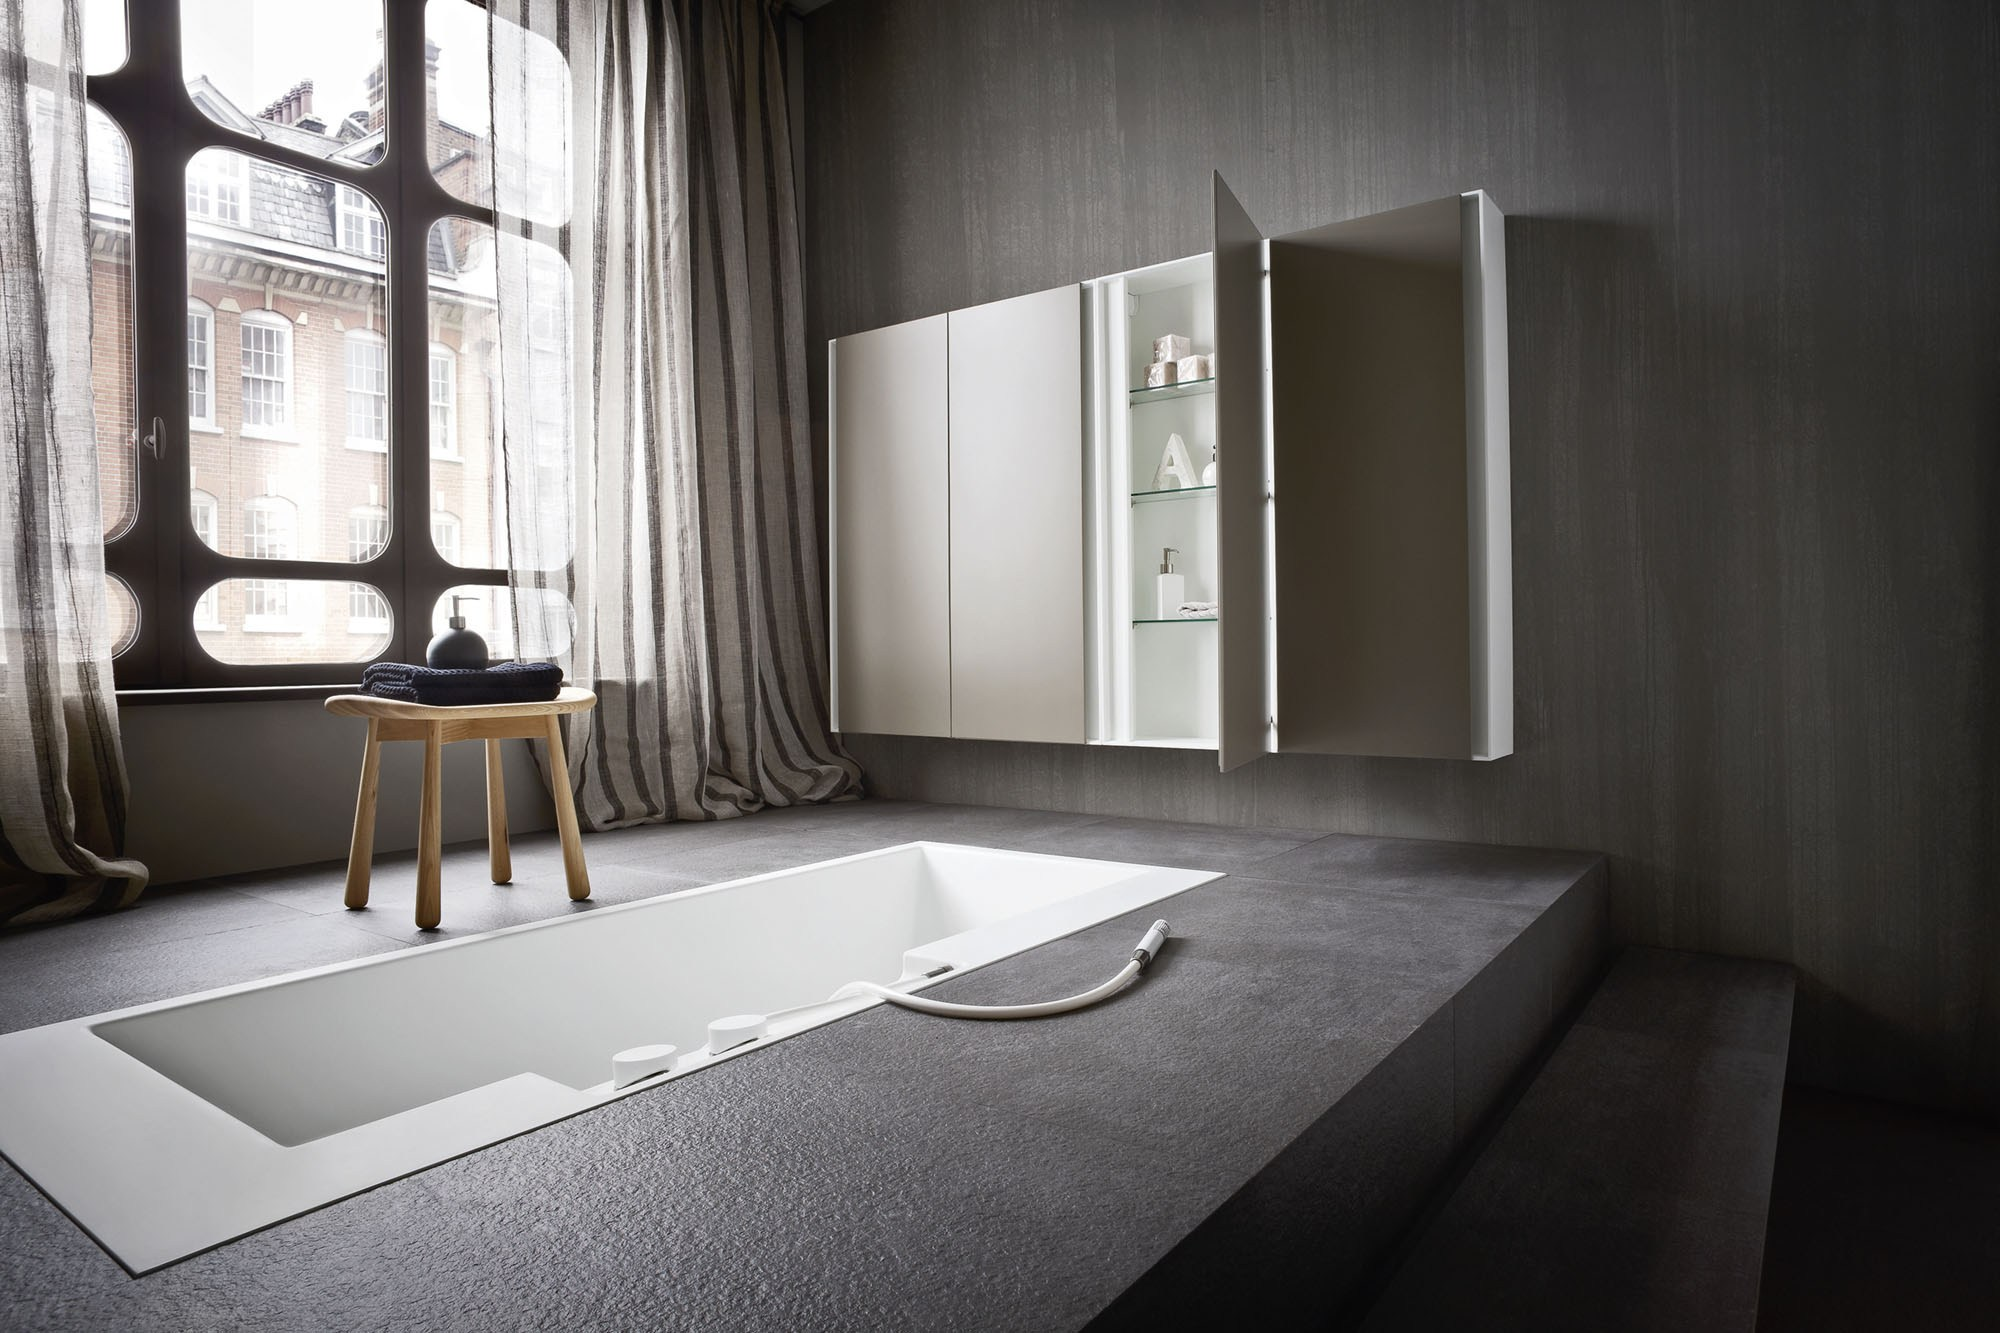 Ergo nomic vasca da bagno da incasso by rexa design design for Vasca bagno design